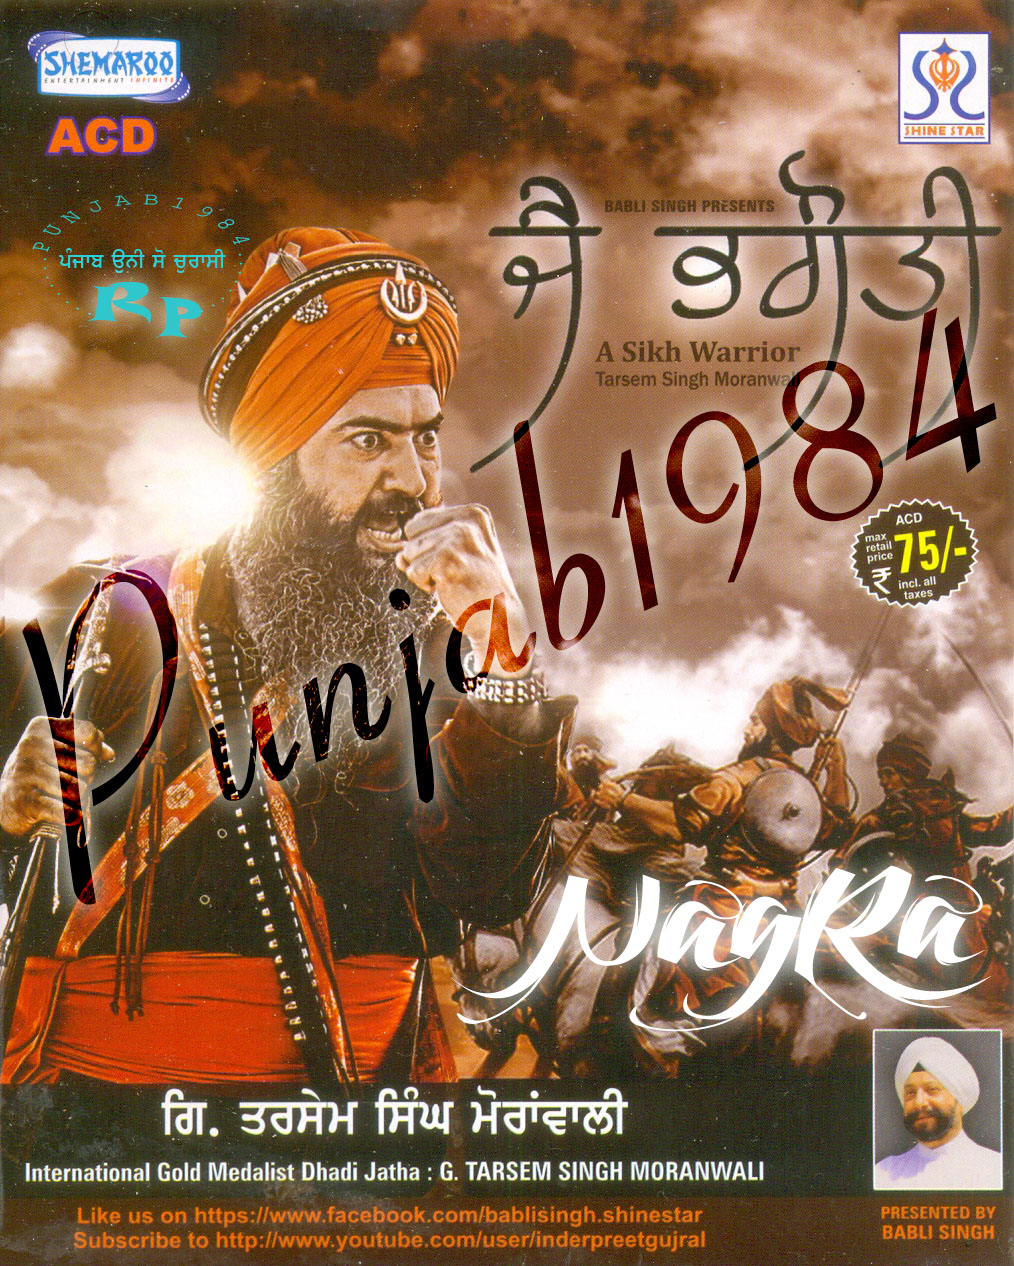 Jai Bhagouti (A Sikh Warrior) By Dhadi Jatha Tarsem Singh Moranwali Mp3 Songs